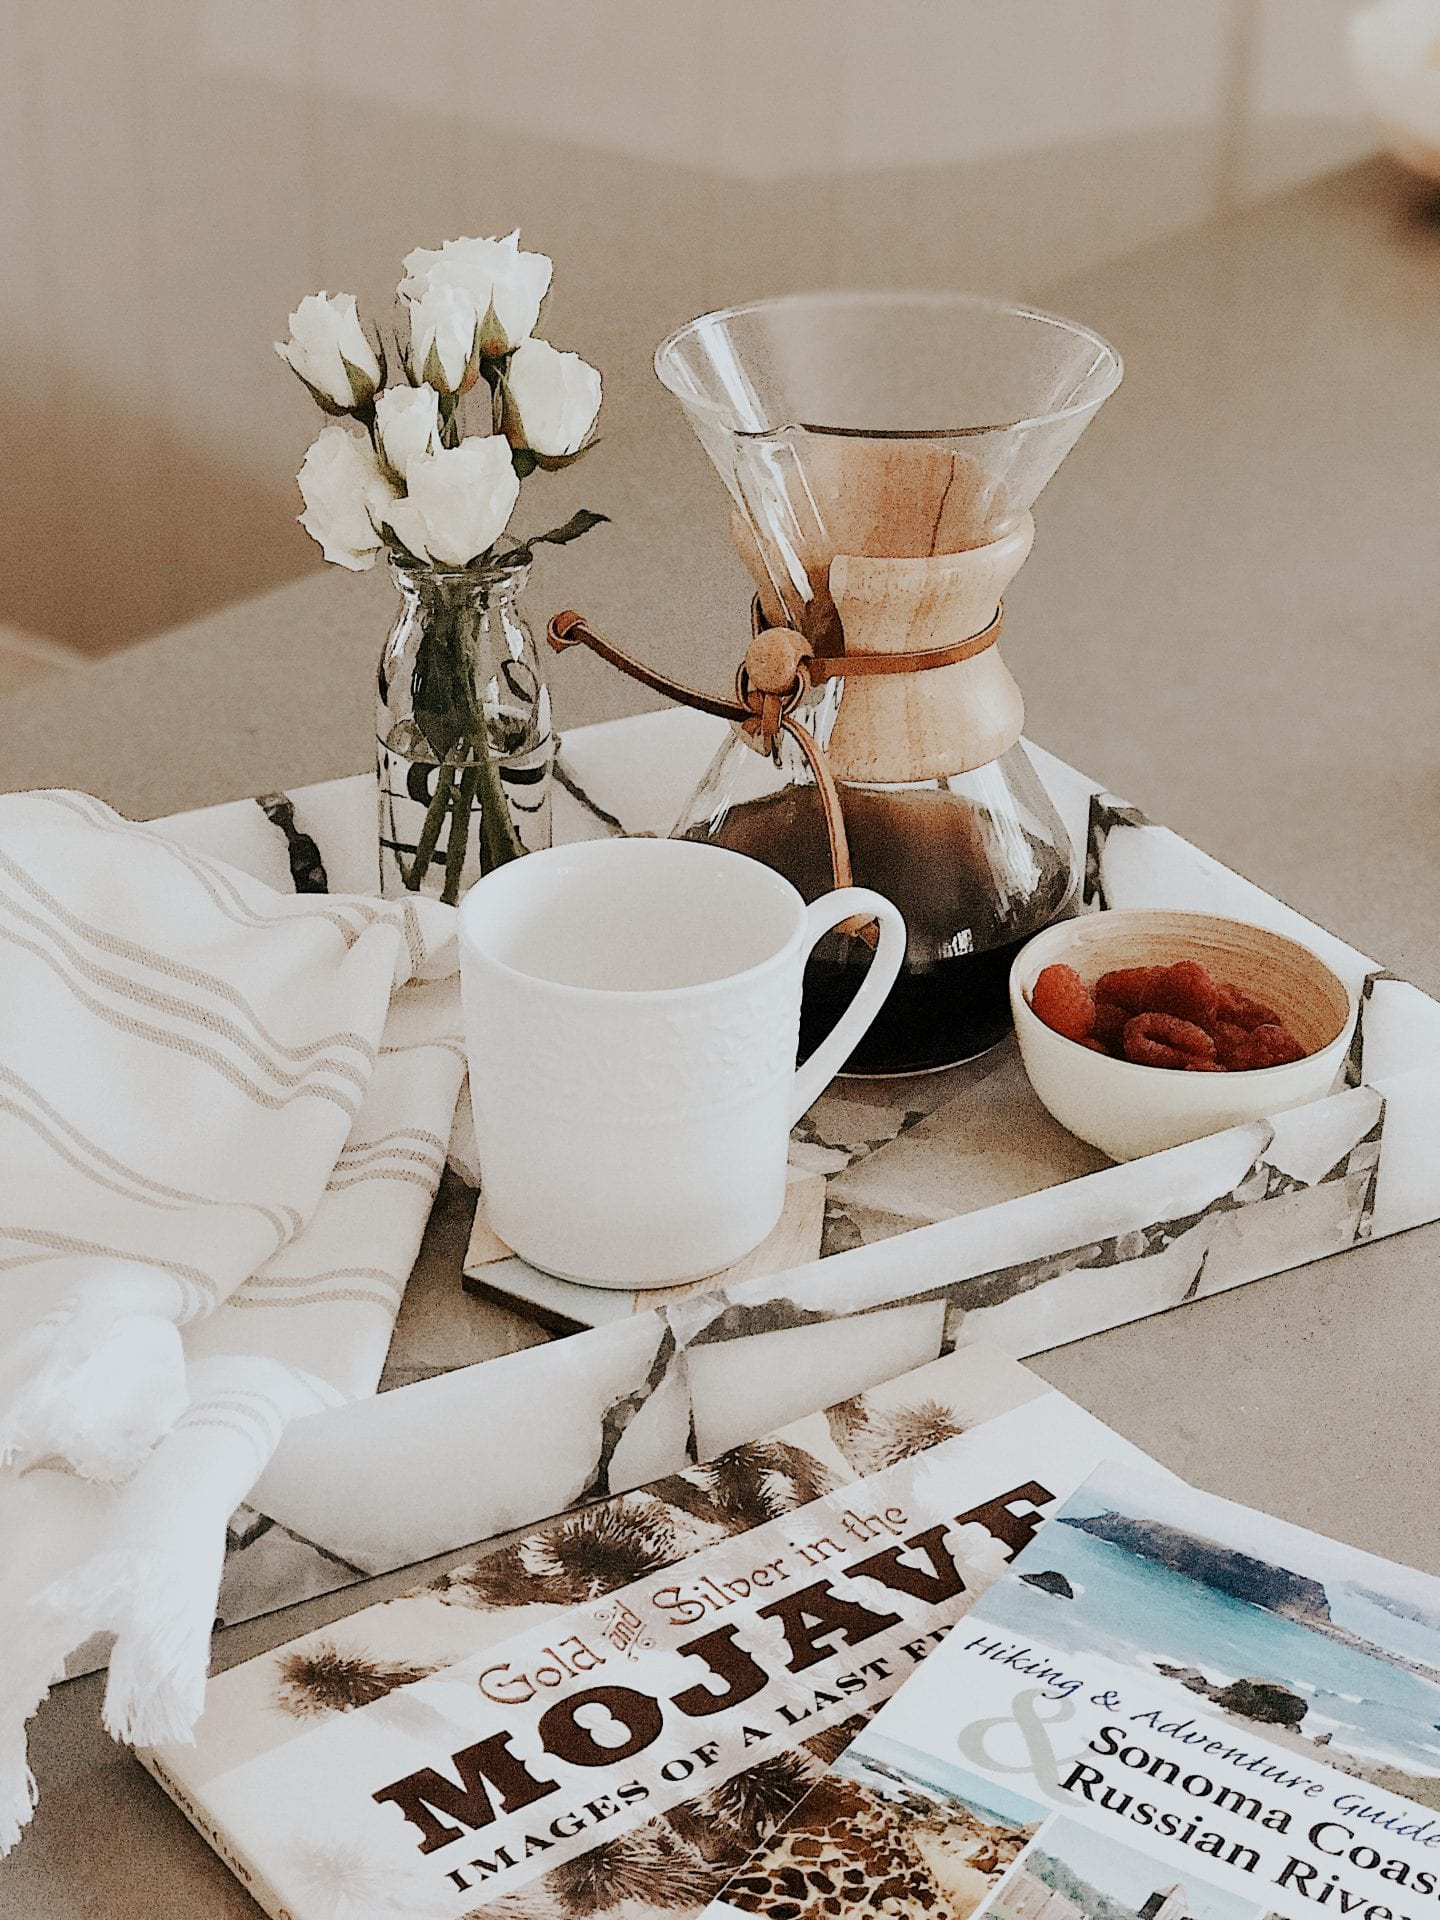 HOW TO STOP WASTING FOOD AND GROCERIES AND SAVE MONEY by popular San Francisco lifestyle blog, Just Add Glam: image of a marble breakfast tray with a carafe of coffee, a white mug, and a small bowl of raspberries on it.